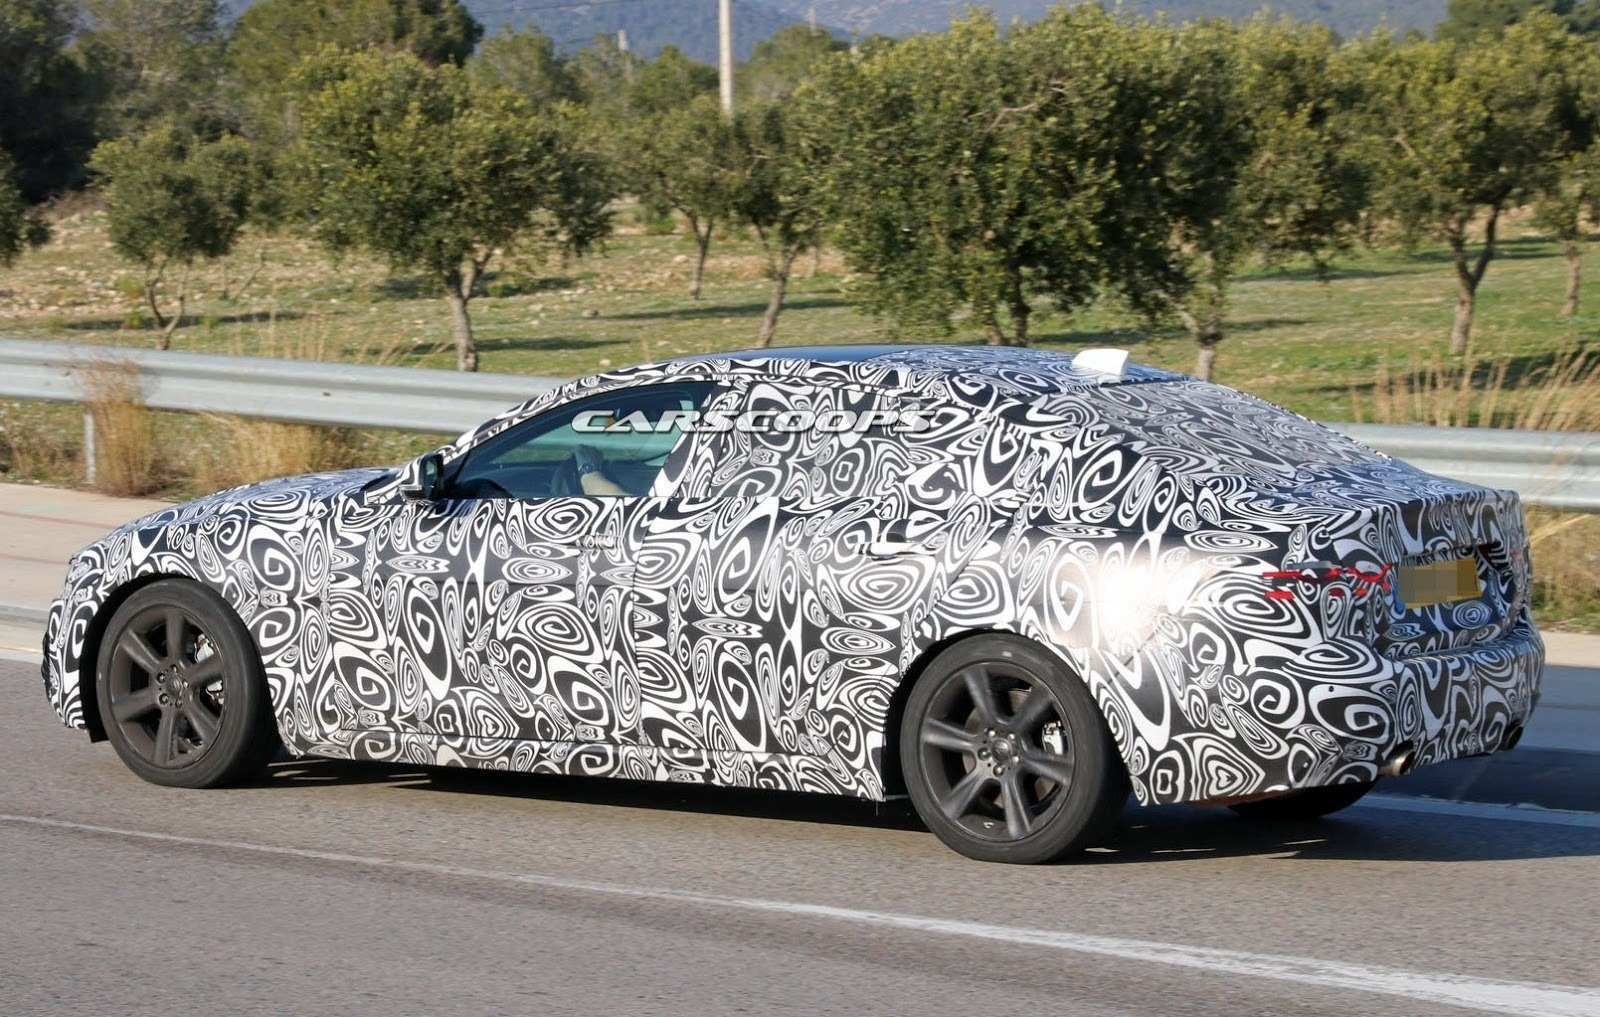 64 New 2019 Jaguar Xj Spy Performance and New Engine with 2019 Jaguar Xj Spy